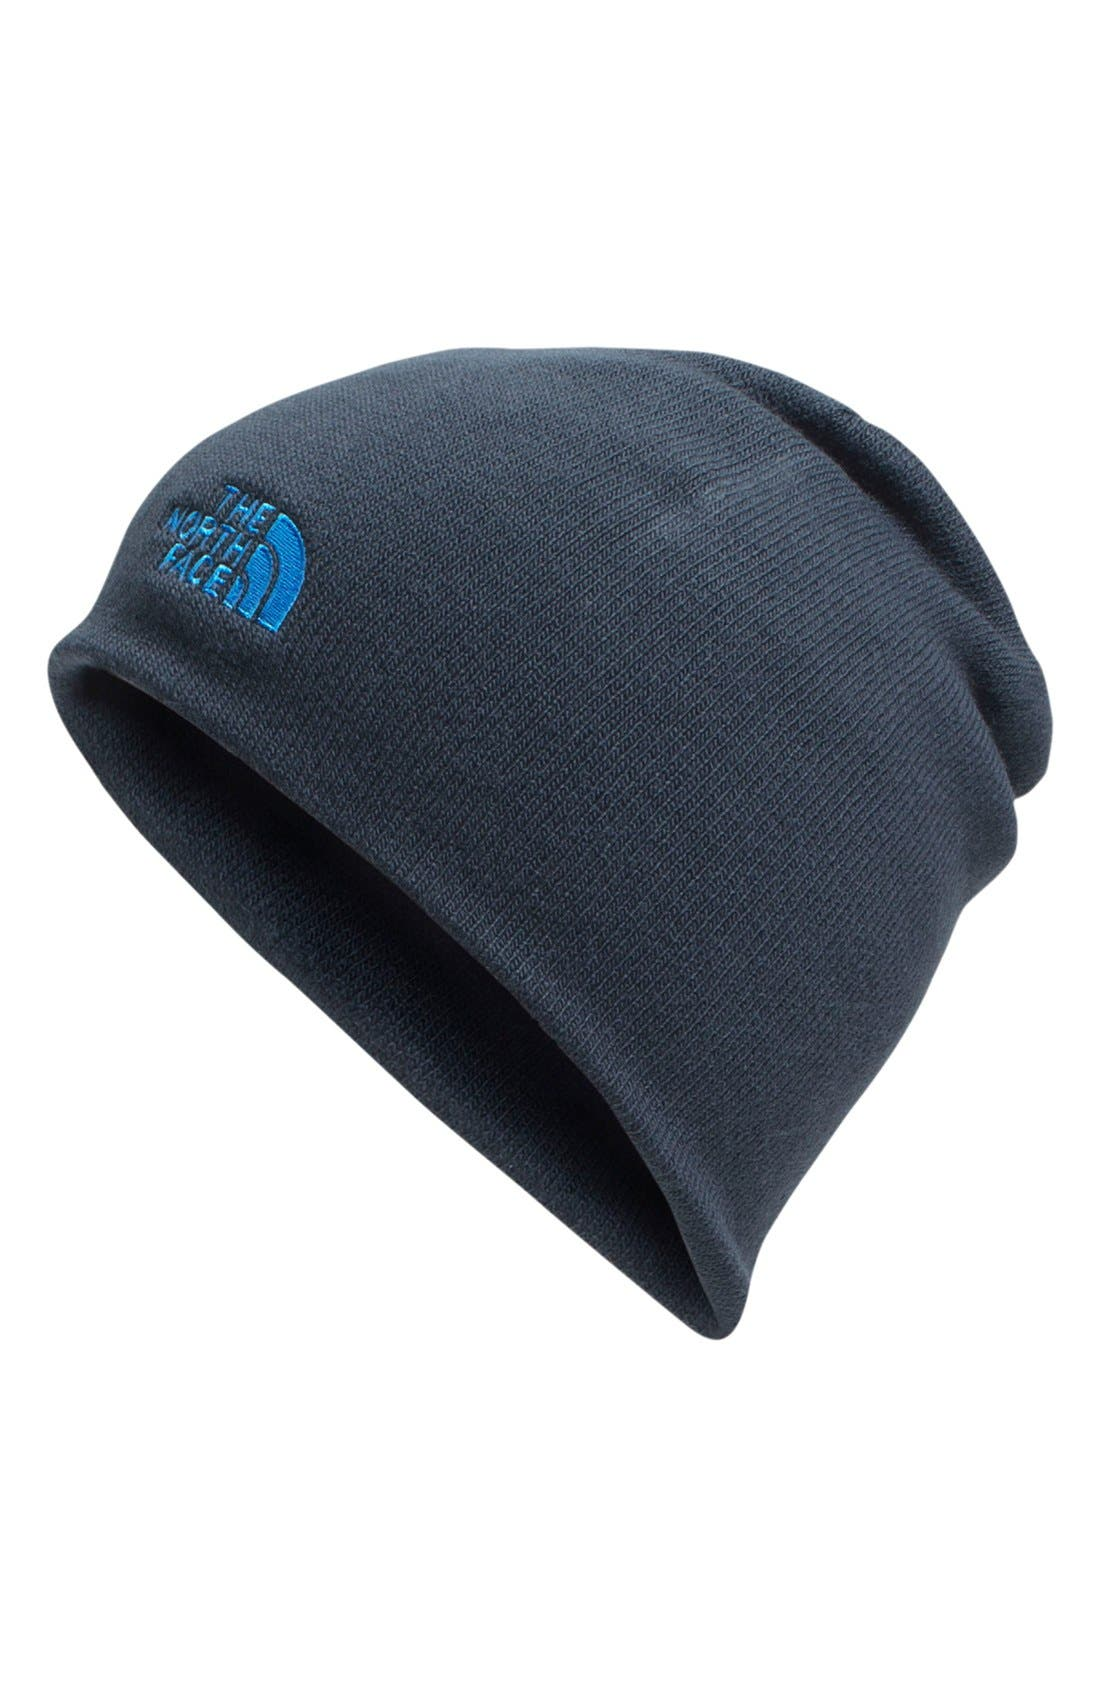 Alternate Image 2  - The North Face Reversible Beanie